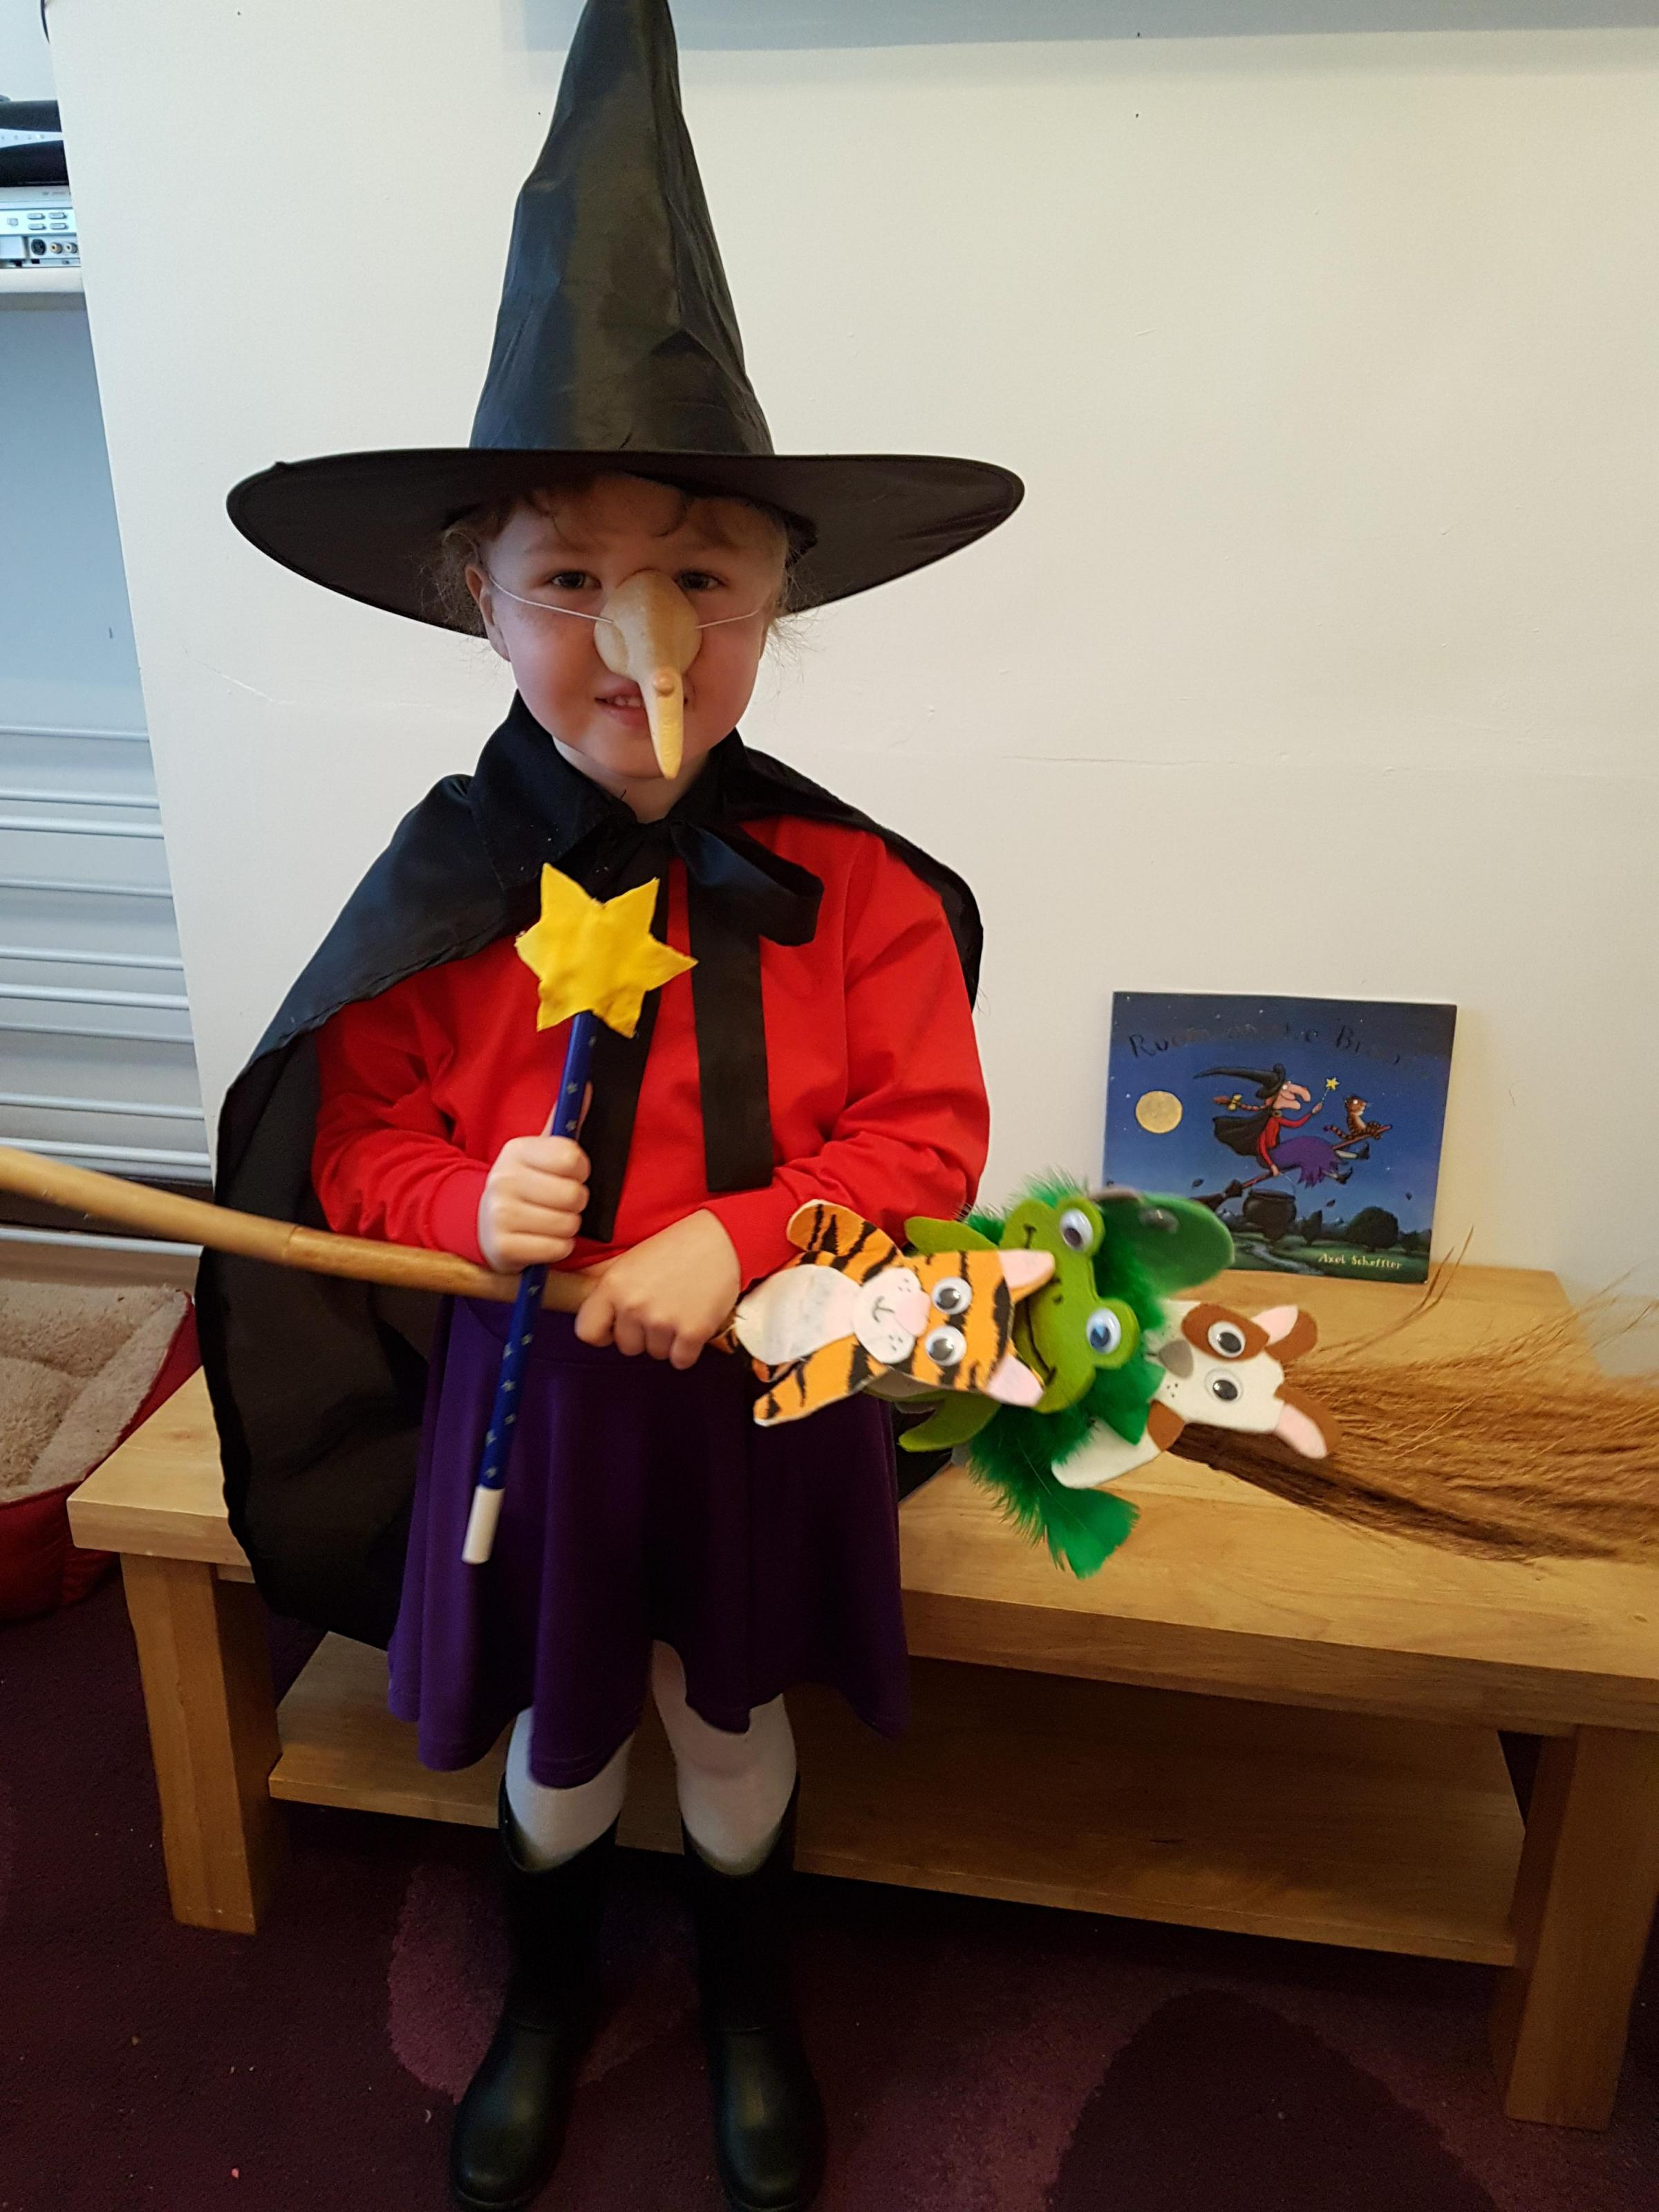 My daughter has dressed up as the witch from Julia Donaldsonu0027s book u0027Room on the  sc 1 st  The Bolton News & World Book Day 2018 - Your Pictures | The Bolton News